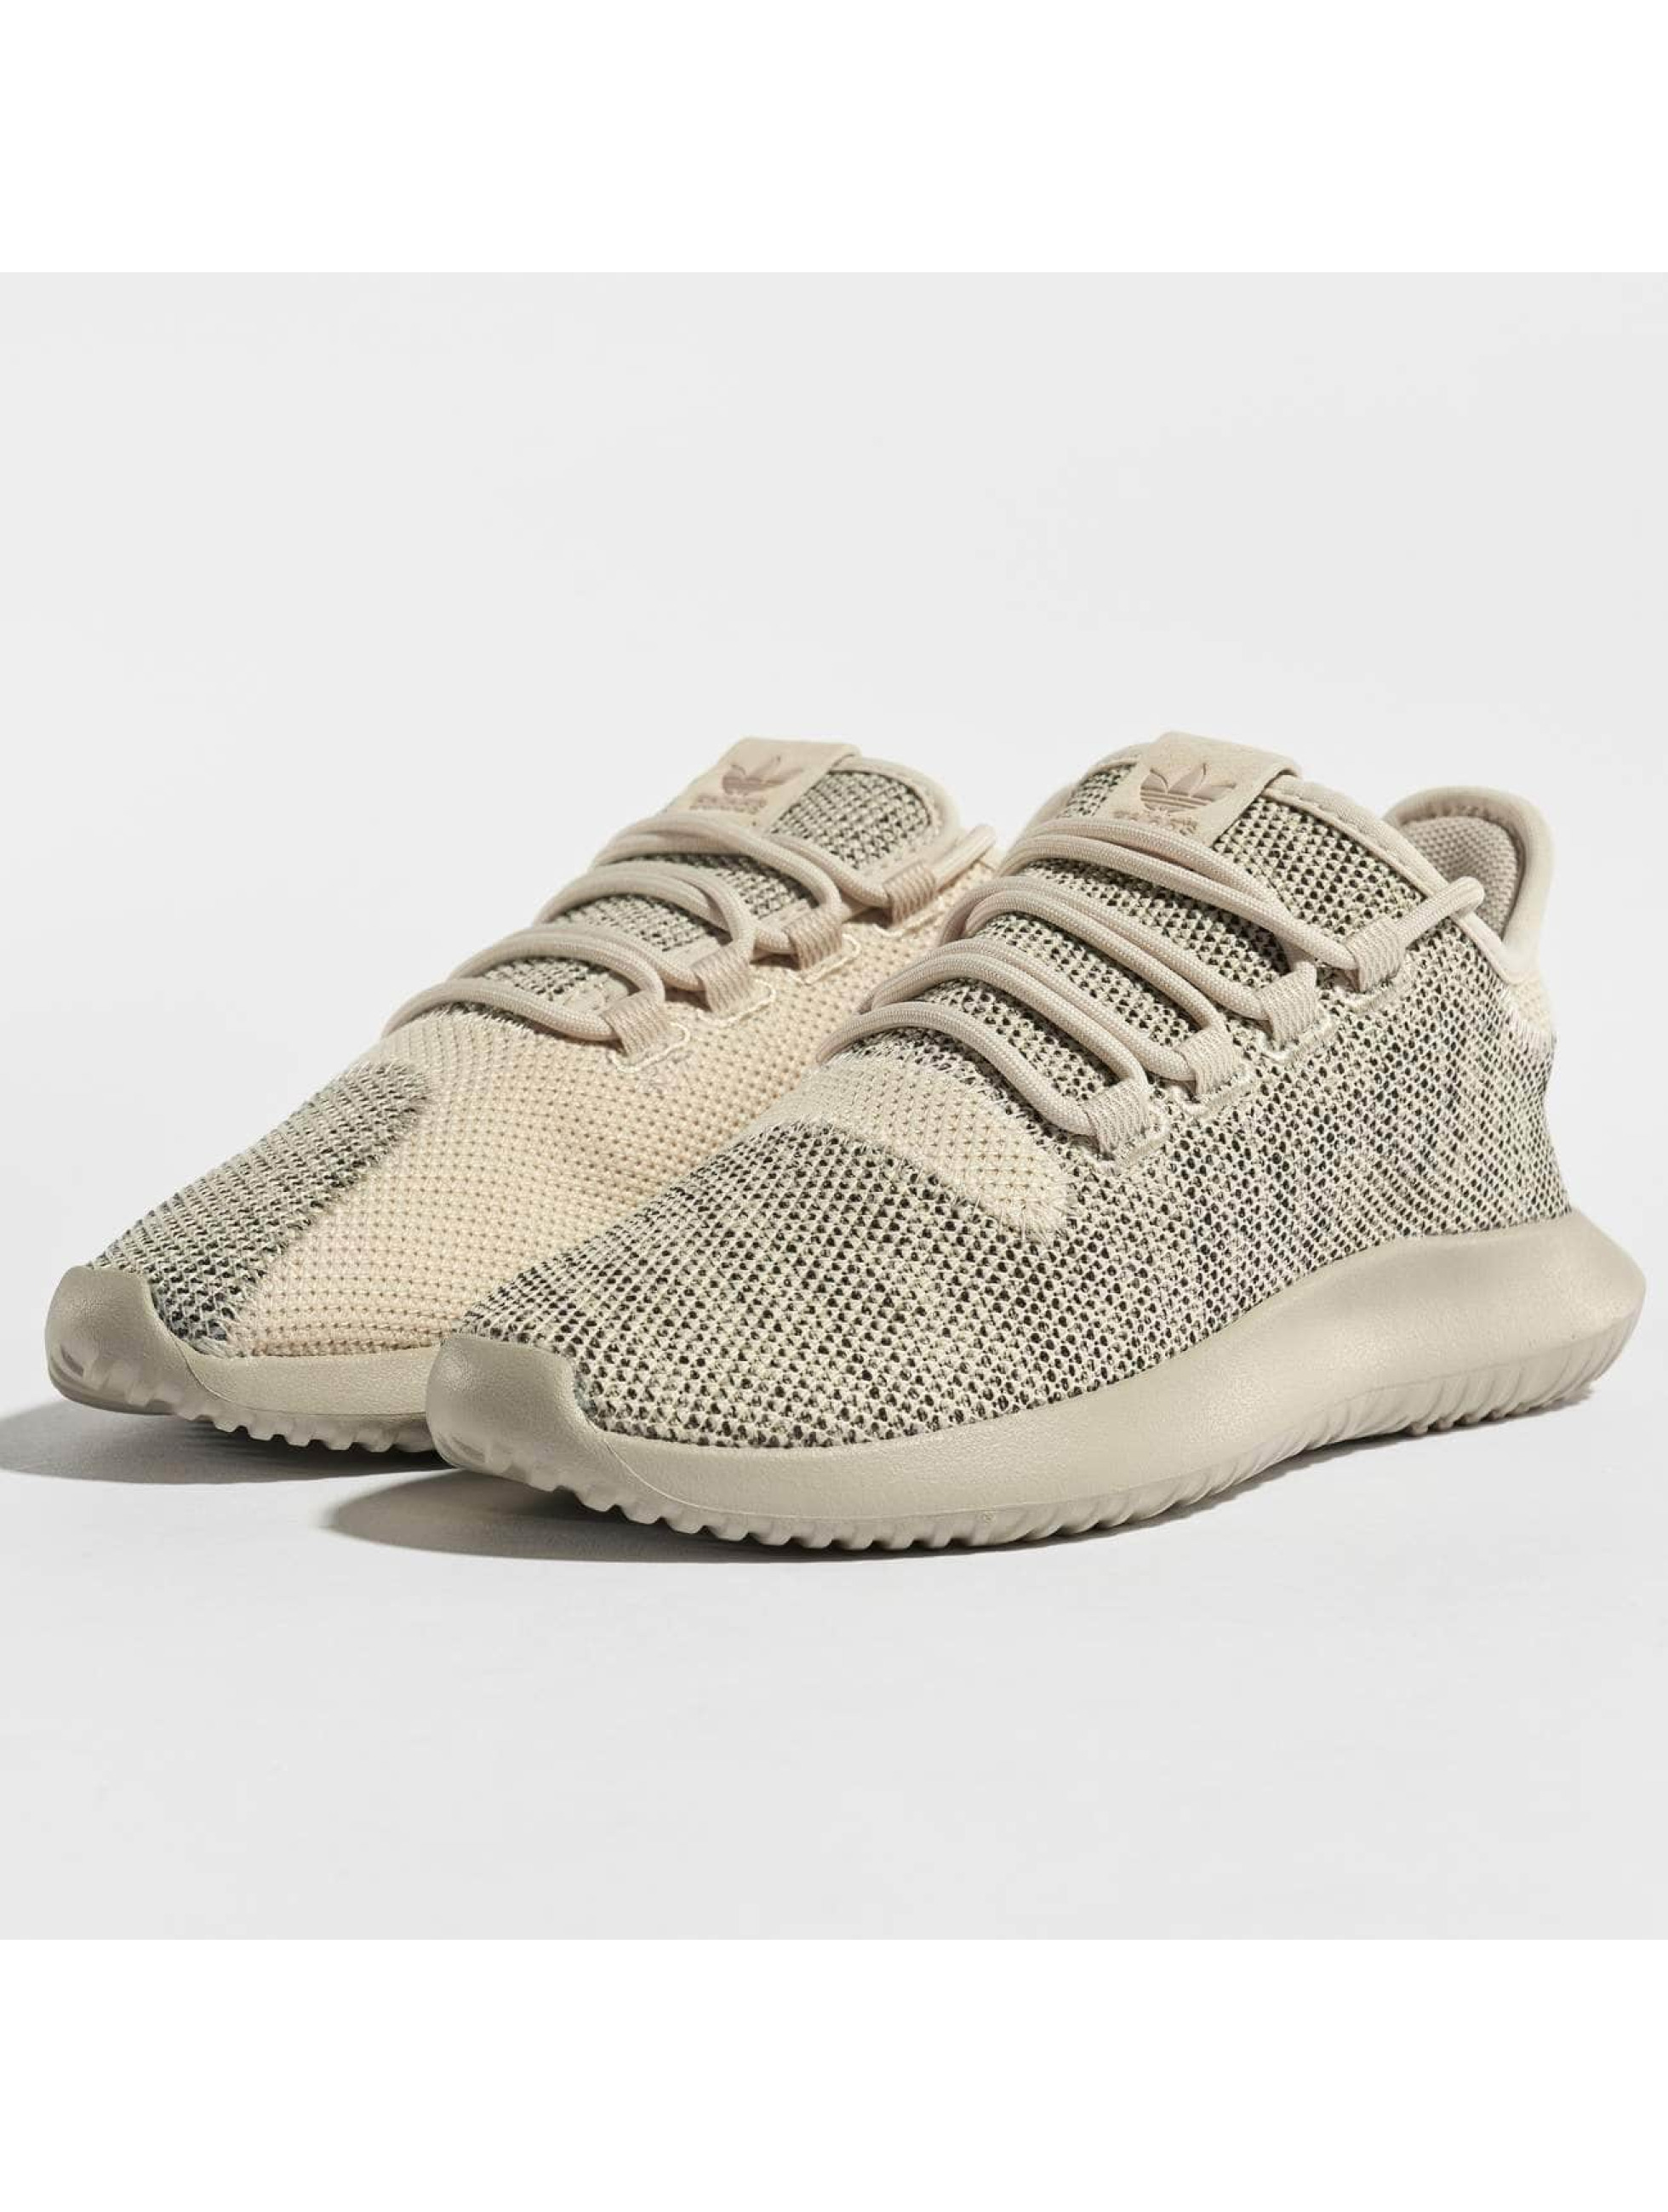 adidas tubular shadow j beige femme baskets adidas acheter pas cher chaussures 303507. Black Bedroom Furniture Sets. Home Design Ideas